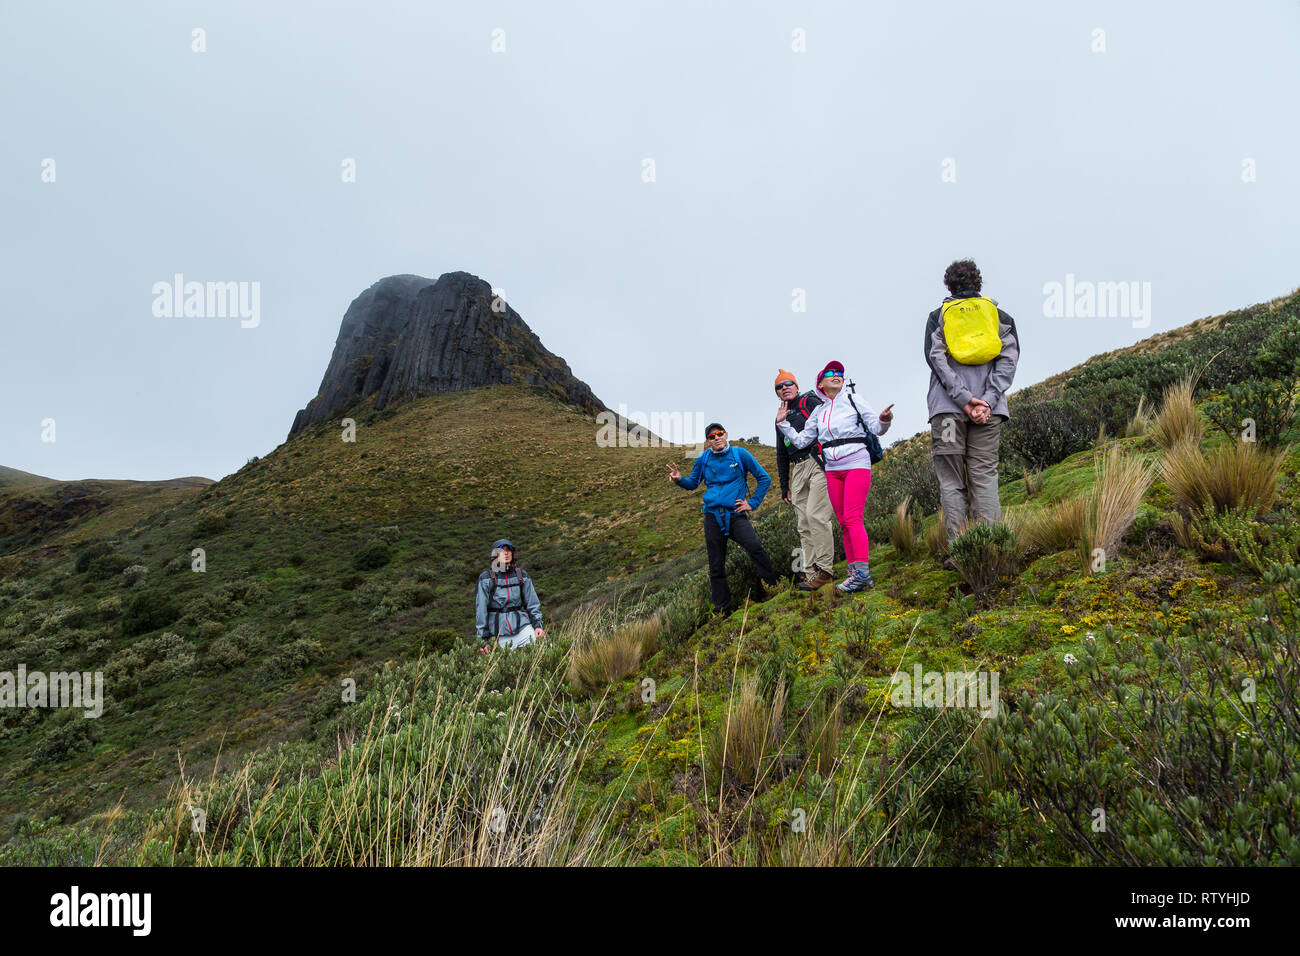 Papallacta, Ecuador, July 2018: A group of mountaineers take a break before continuing to climb the Cerro del Conde in the background, in one of the f - Stock Image